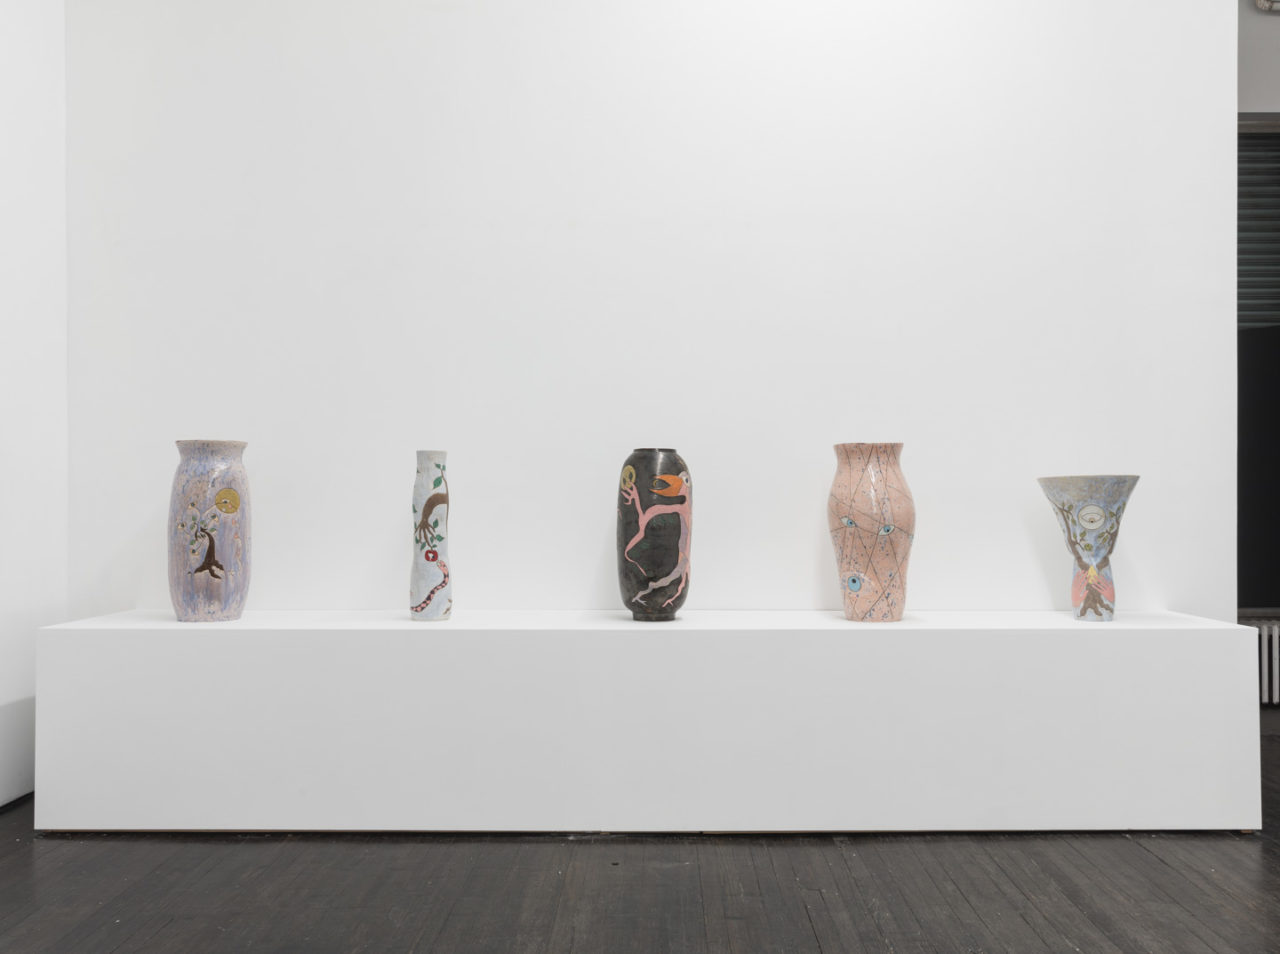 Earth/Heaven<br>Heaven/Earth | Installation view, <i>Earth/Heaven Heaven/Earth</i>, 2020